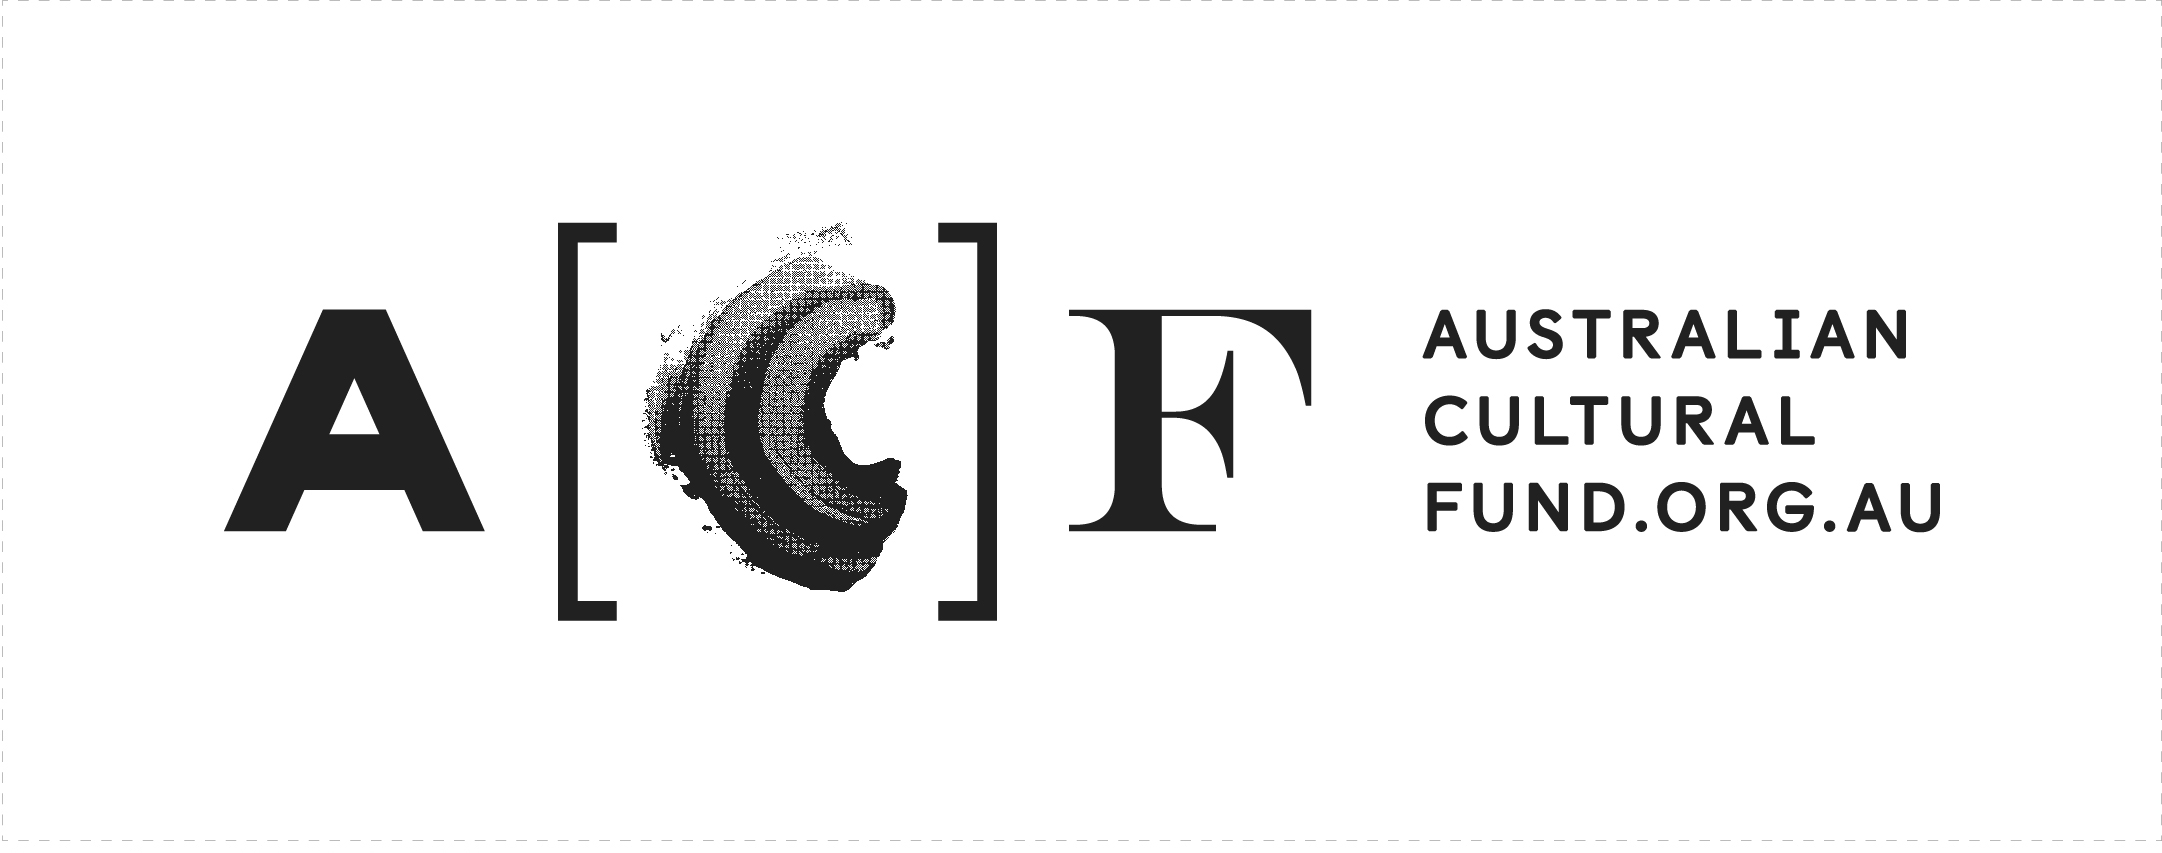 In Motion is supported by Creative Partnerships Australia through the Australian Cultural Fund.